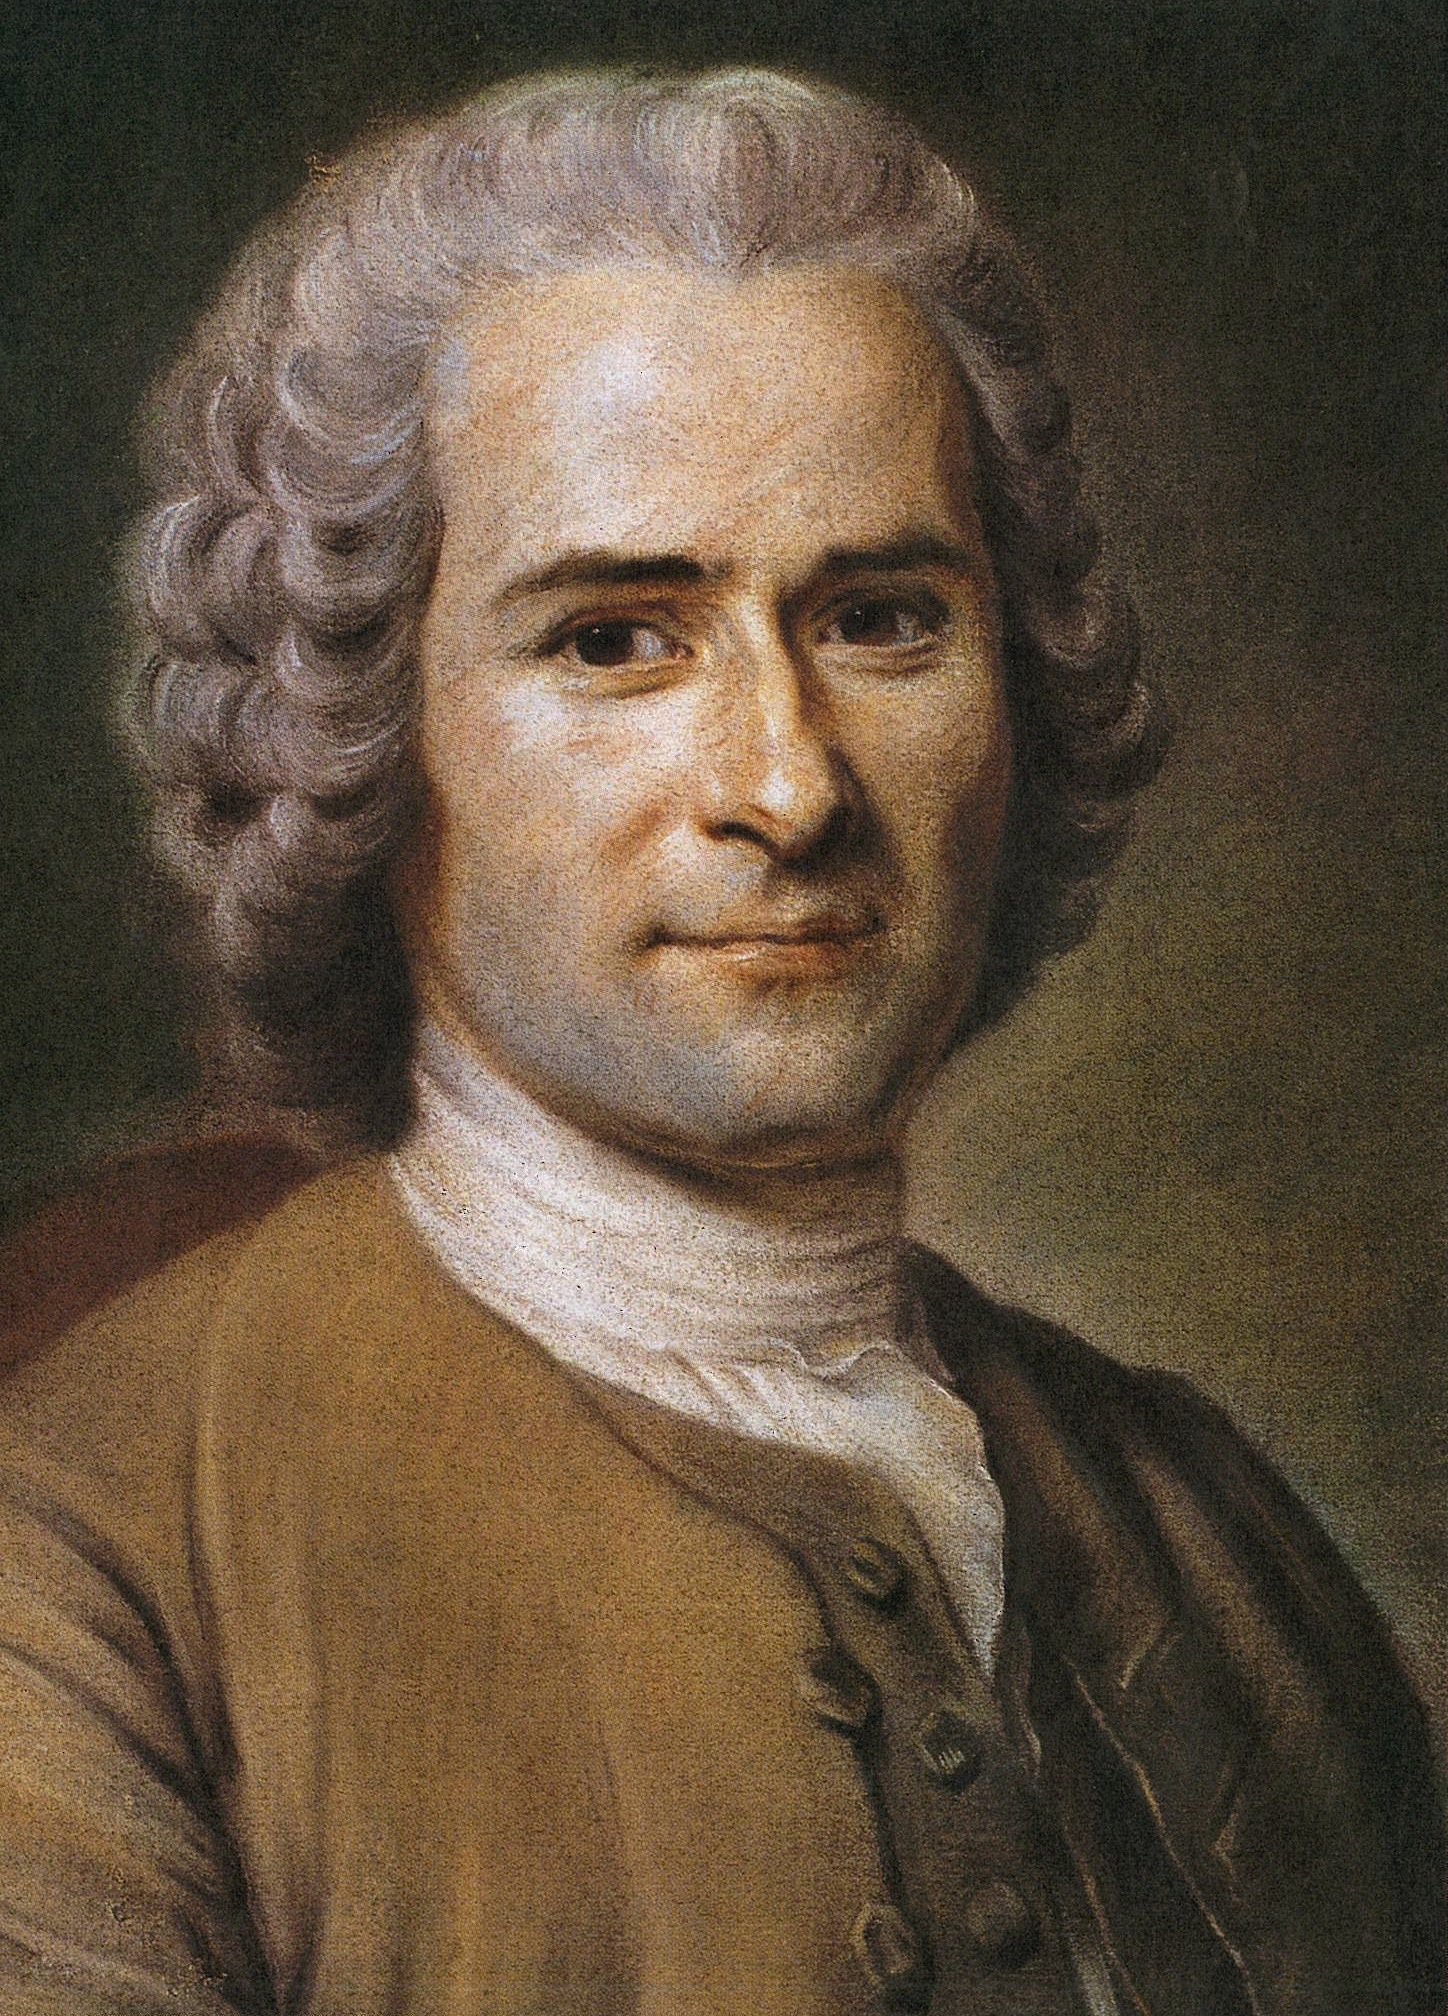 Jean-Jacques_Rousseau_(painted_portrait)[1]